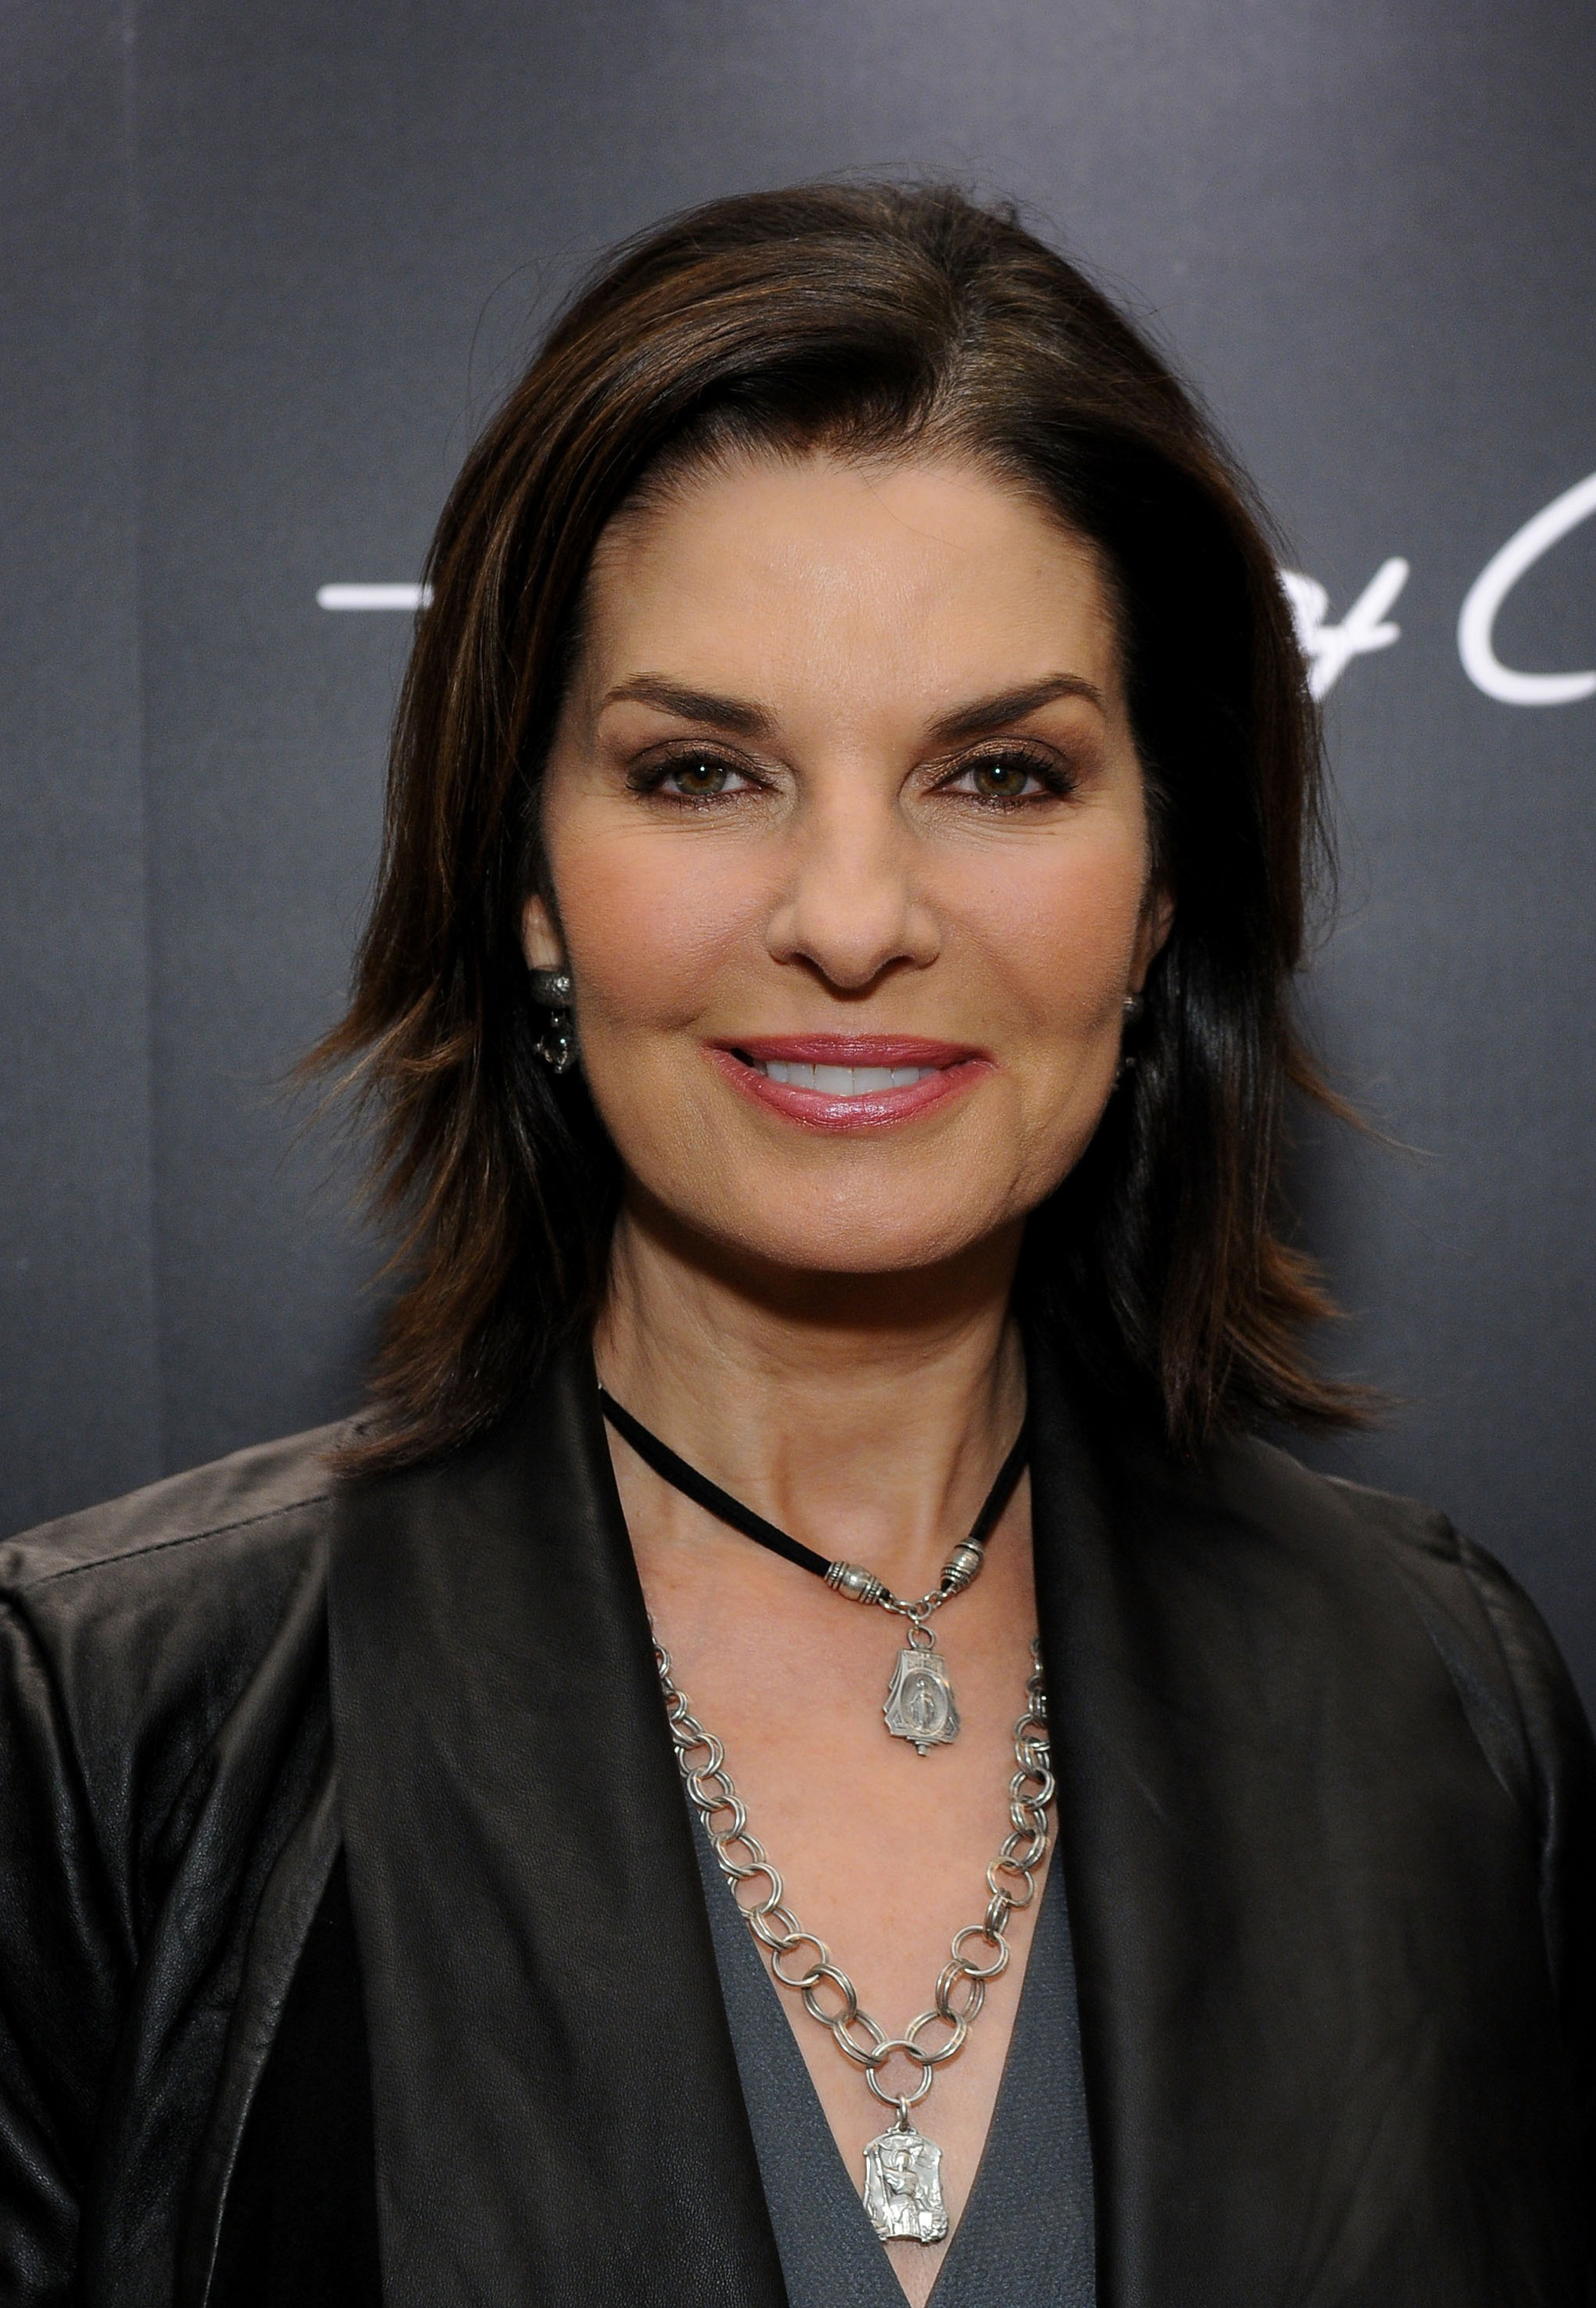 Sela Ward photo 23 of 31 pics wallpaper  photo #373415 - Cheerleader Hairstyles